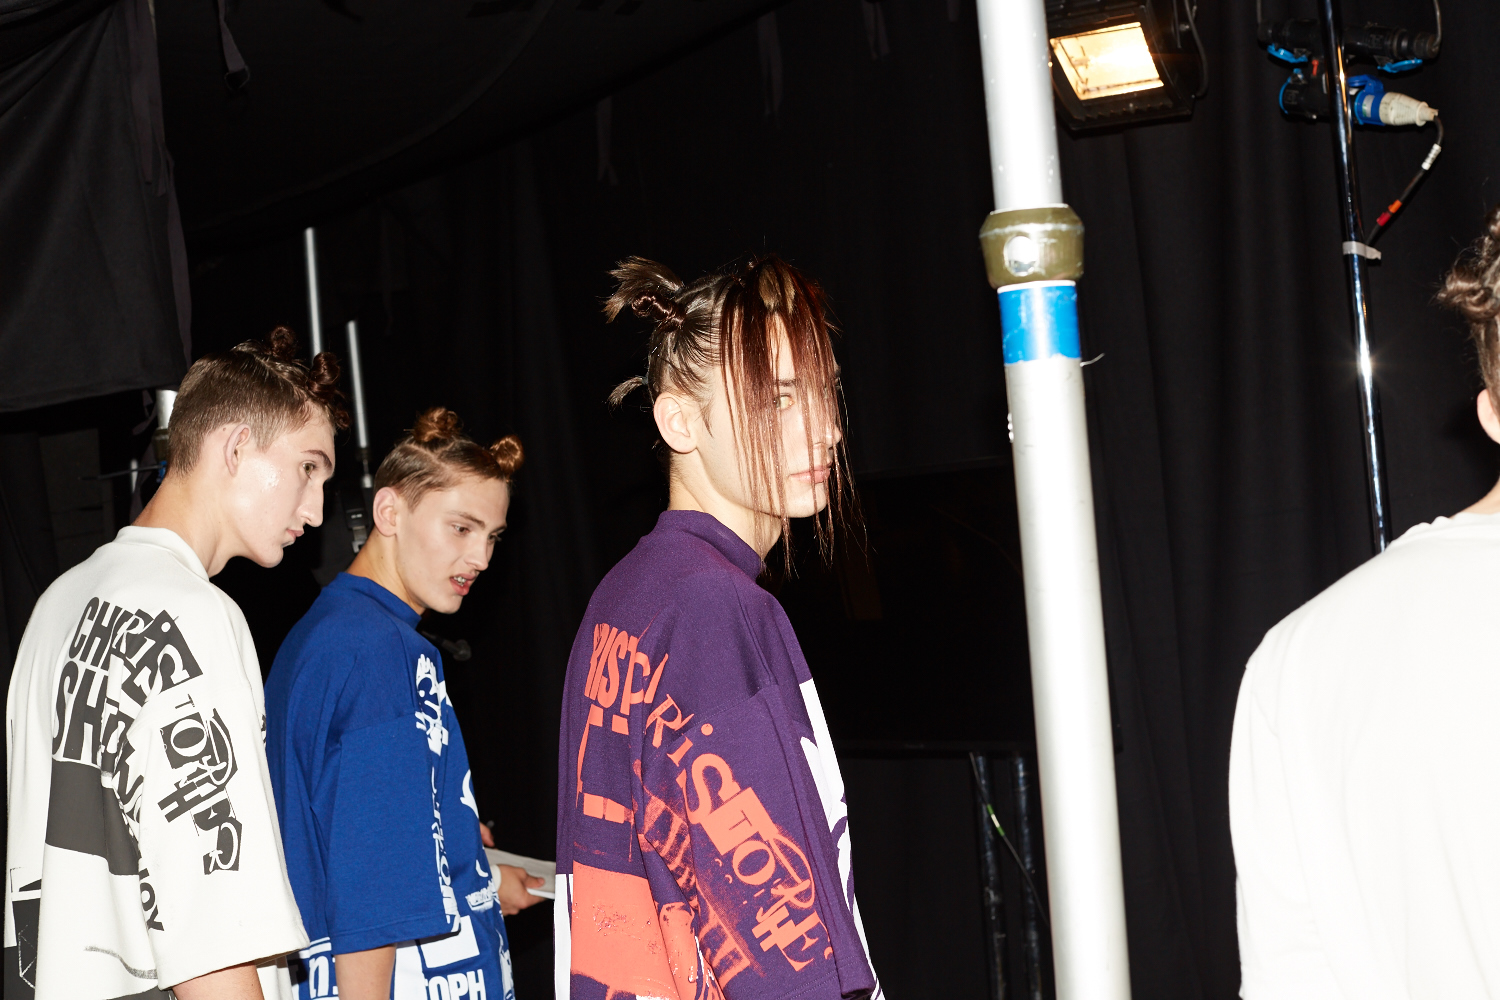 HERO MAGAZINE SS15 LONDON CATWALK CHRIS SHANNON BACKSTAGE JAMES NAYLOR 4T8A2153